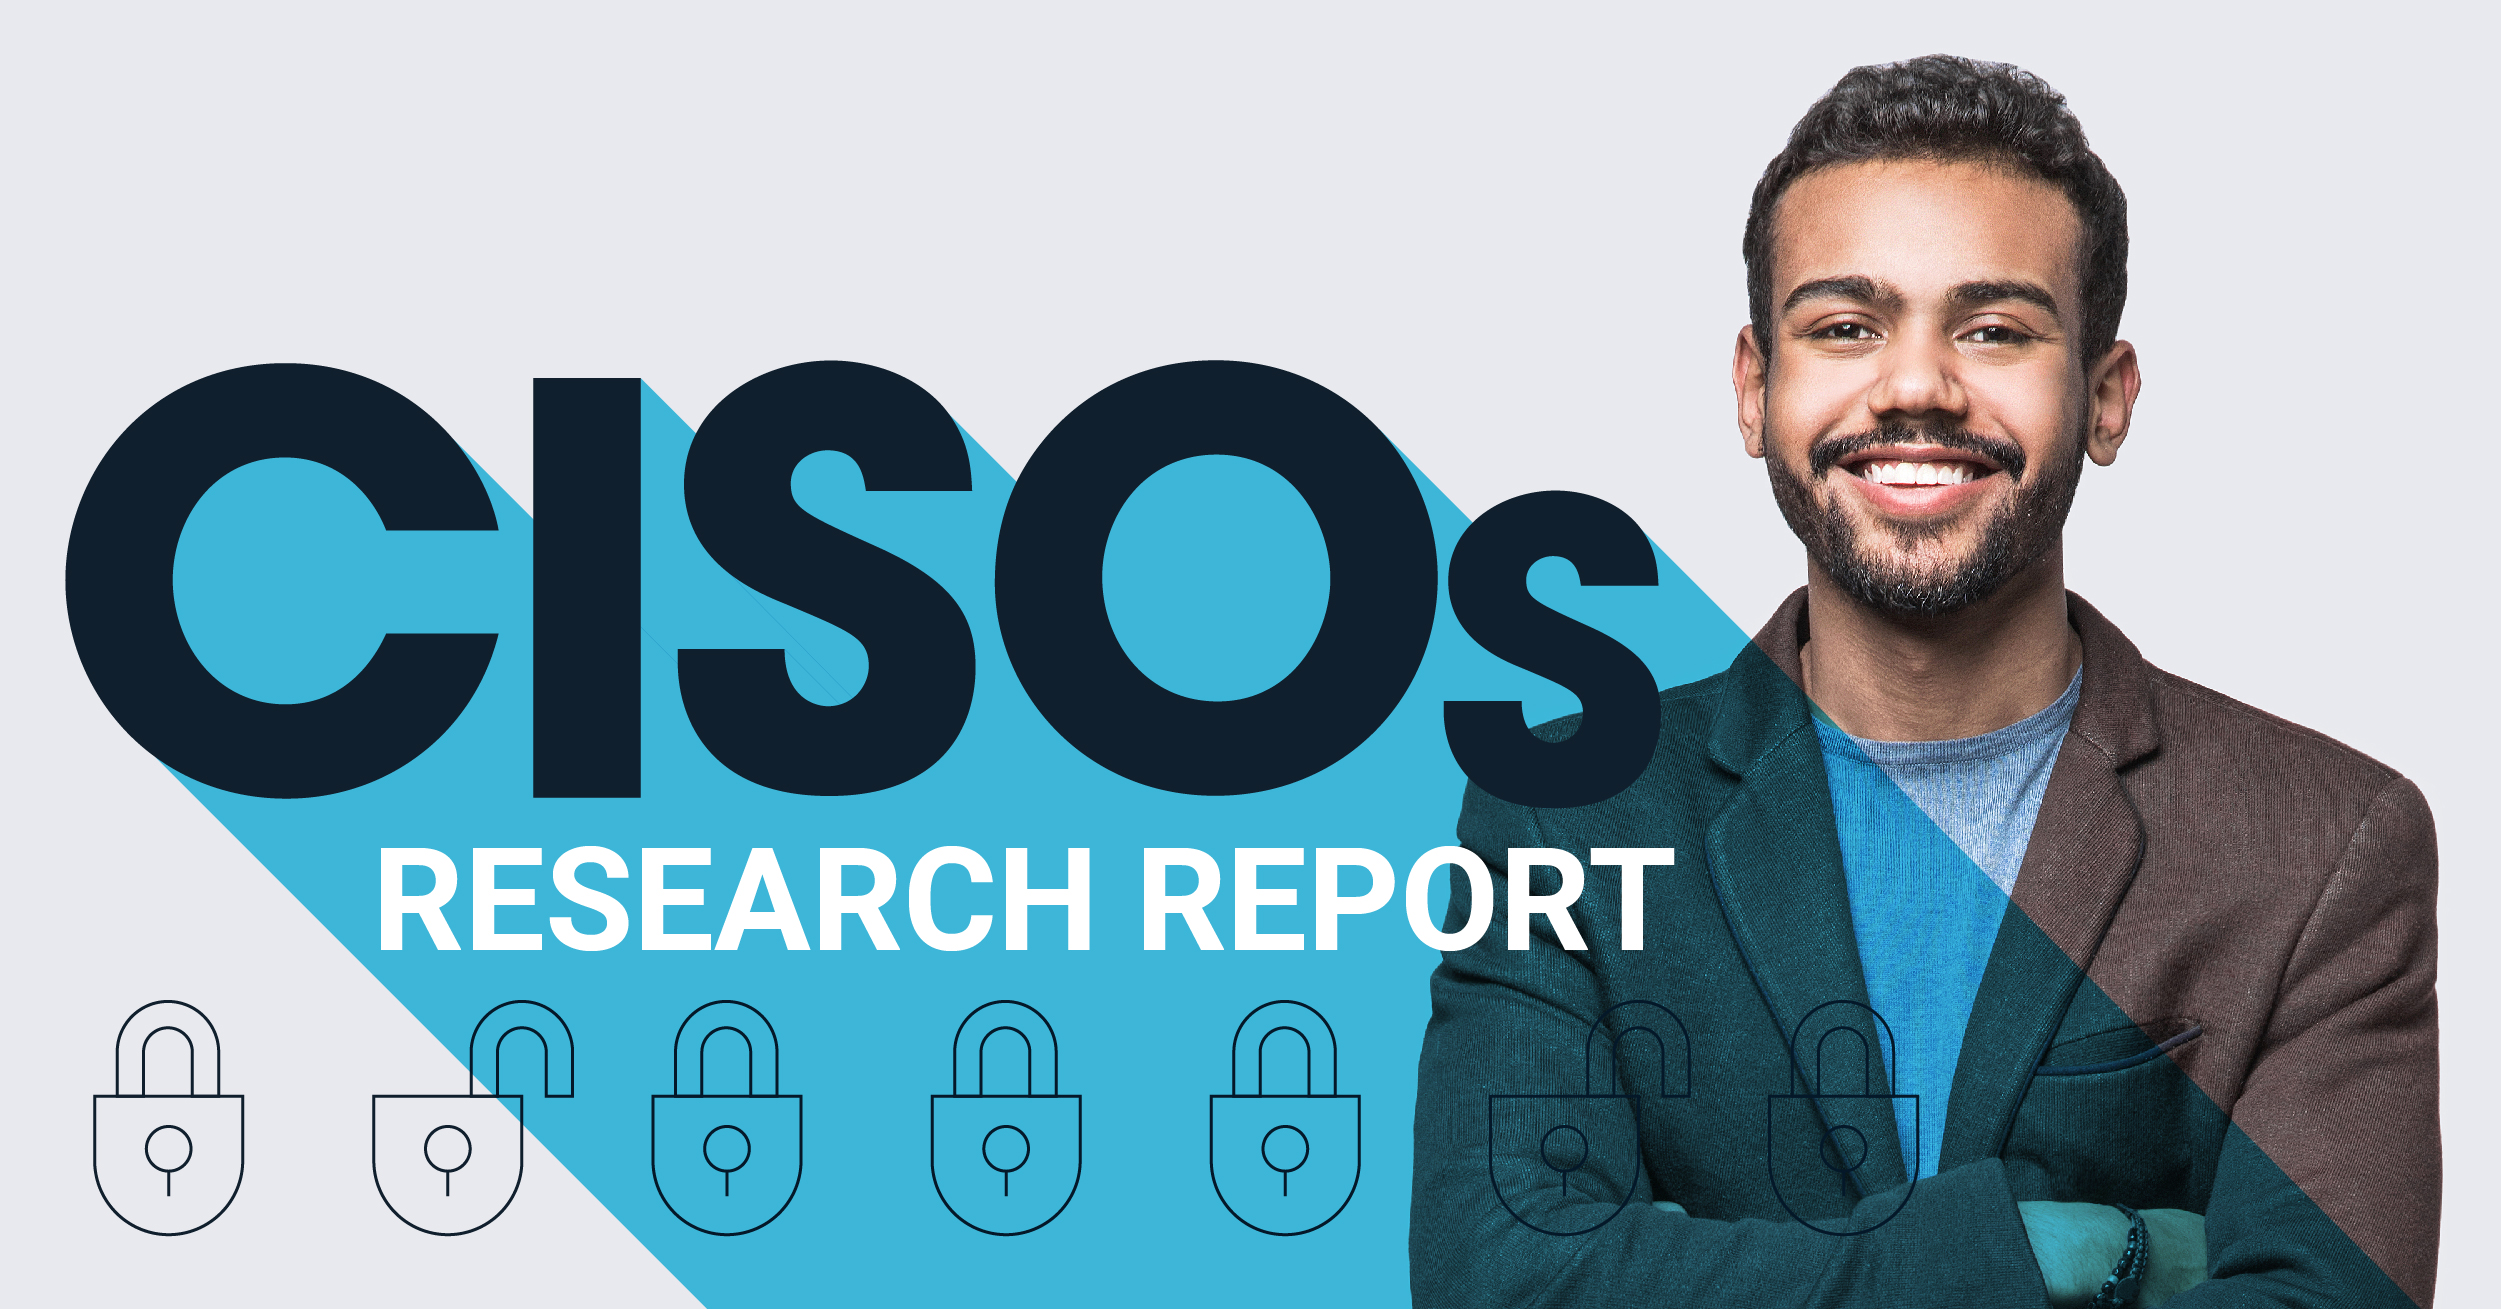 Report for CISOs